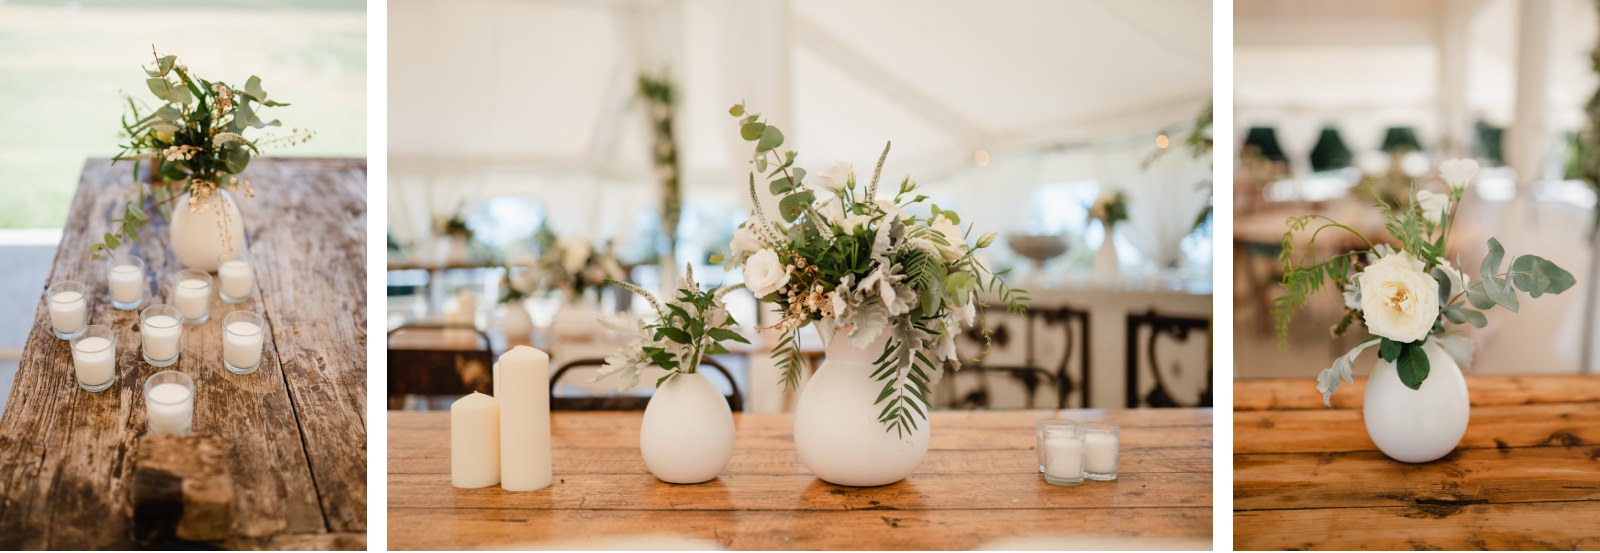 wallalong-house-hunter-valley-wedding-photographer-13